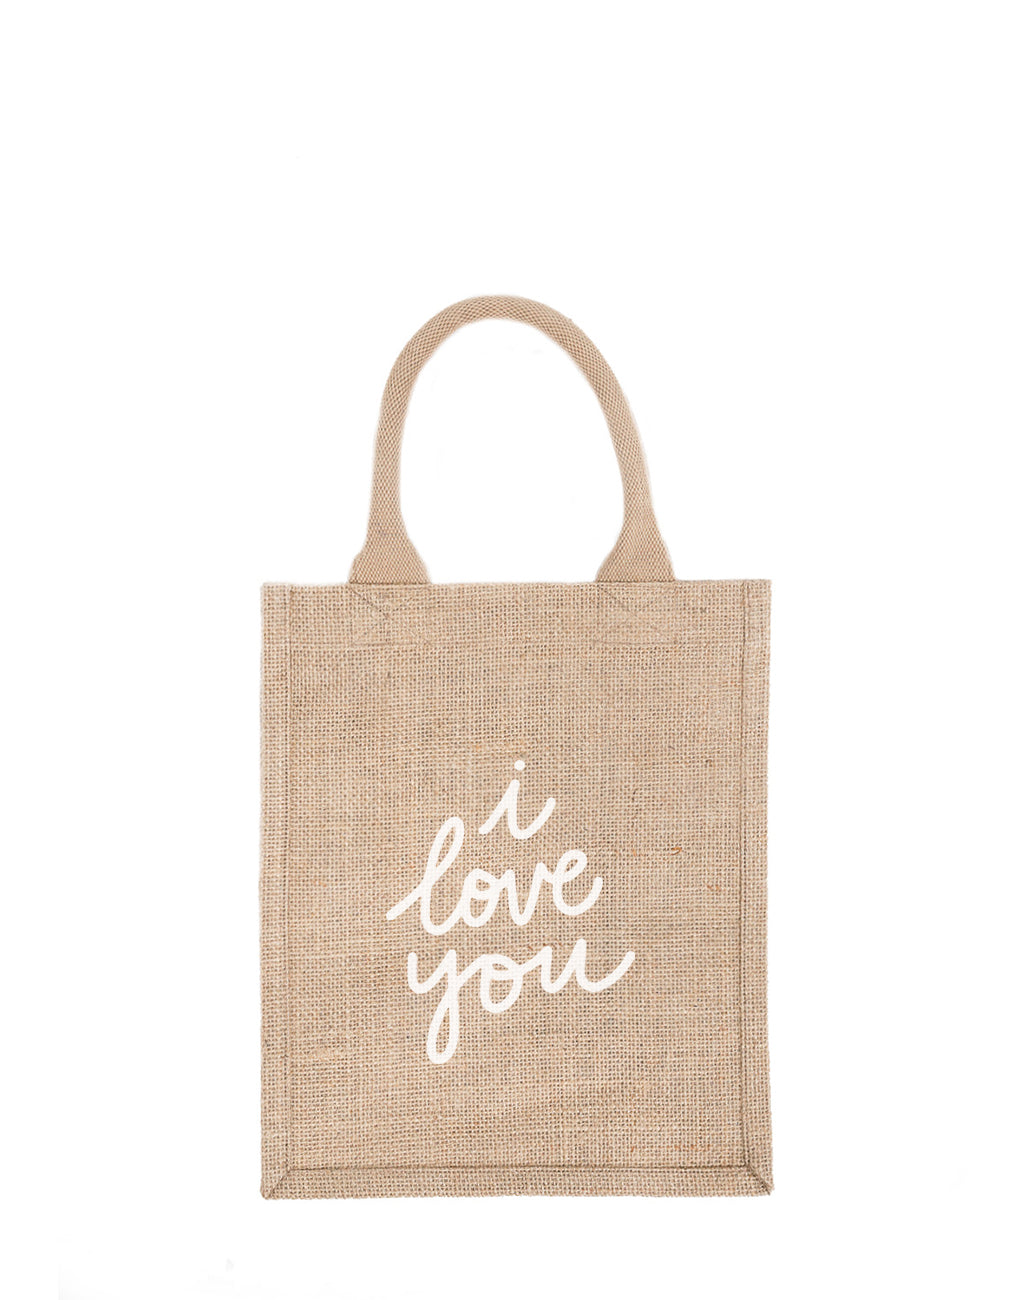 Medium I Love You Reusable Gift Tote In White Font | The Little Market